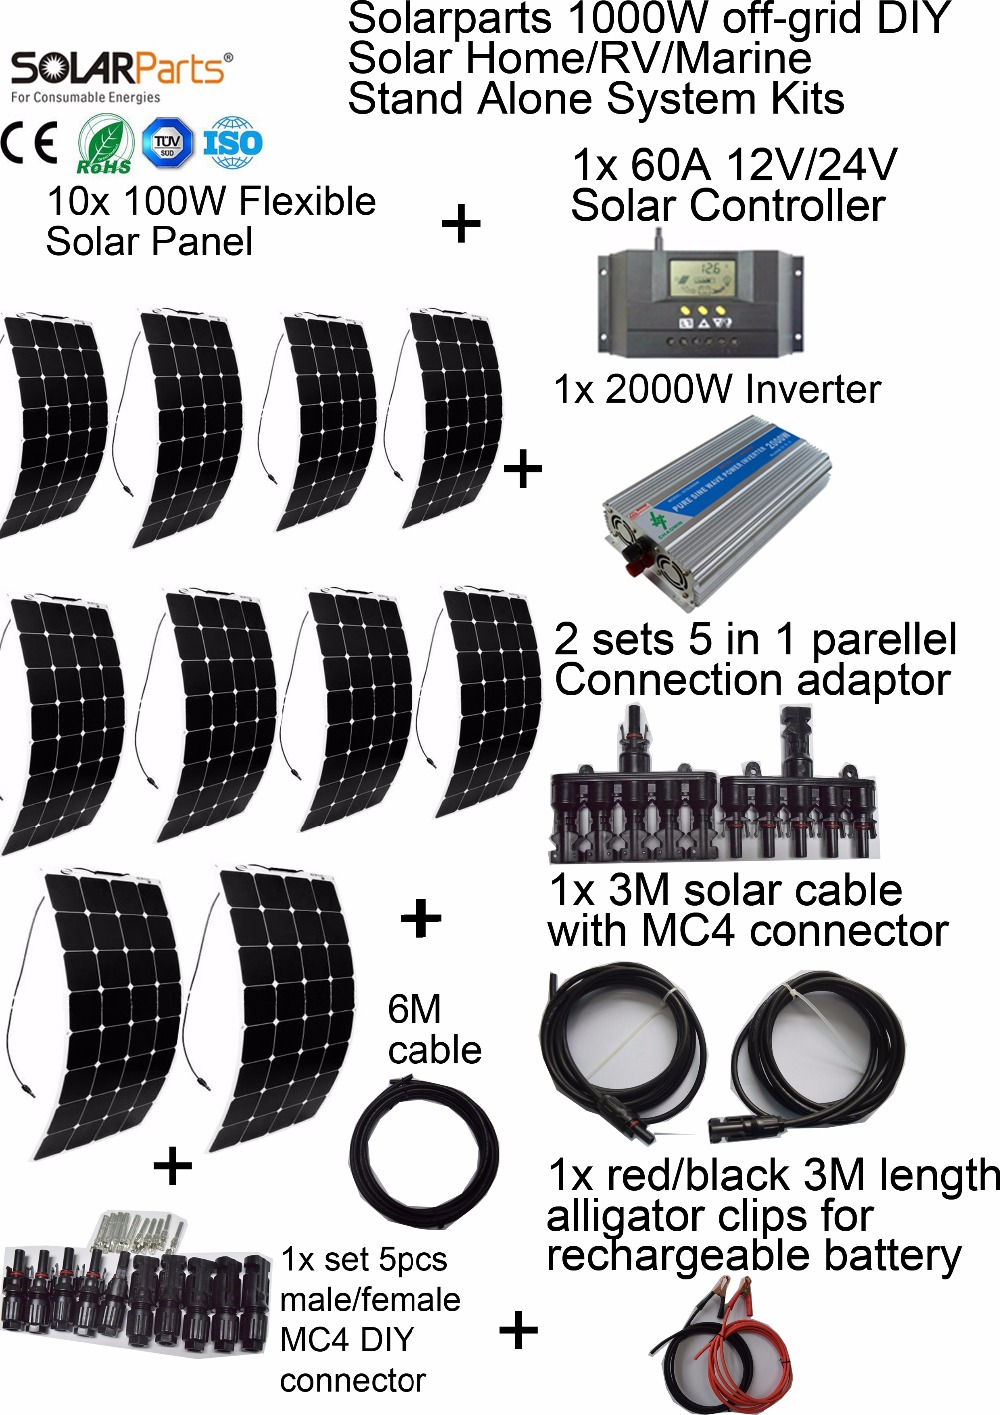 Solarparts 1000W off grid Solar System KITS flexible solar